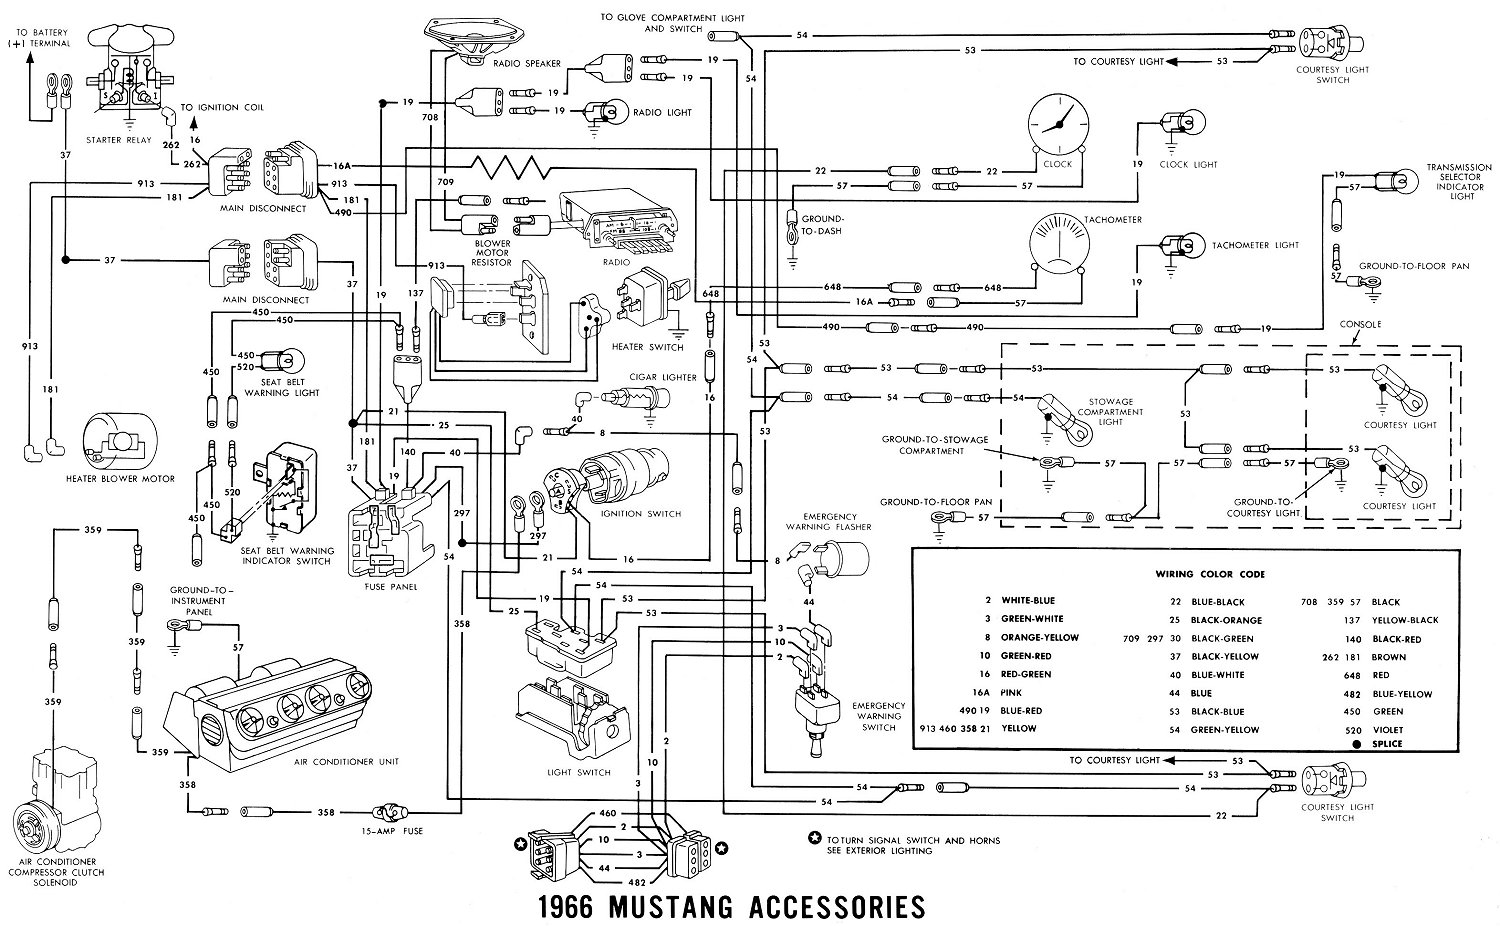 1966 Mustang Headlight Wiring Diagram Wiring Diagram